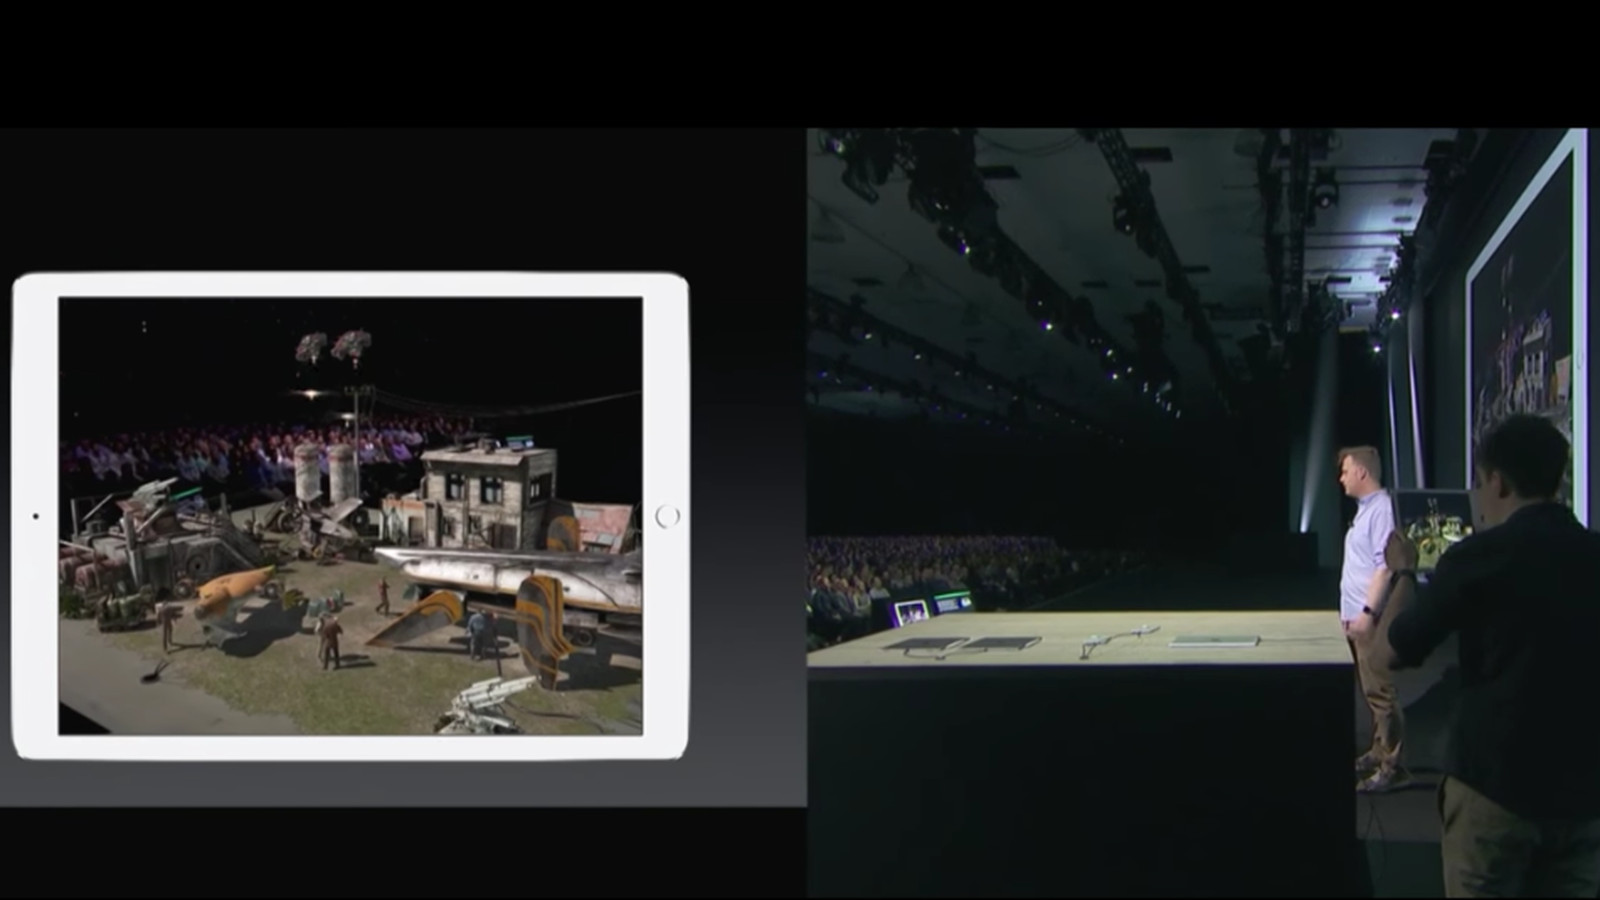 AR Kit Demo at  WWDC 2017  via WingNut Studio, game development company founded by film director, Peter Jackson